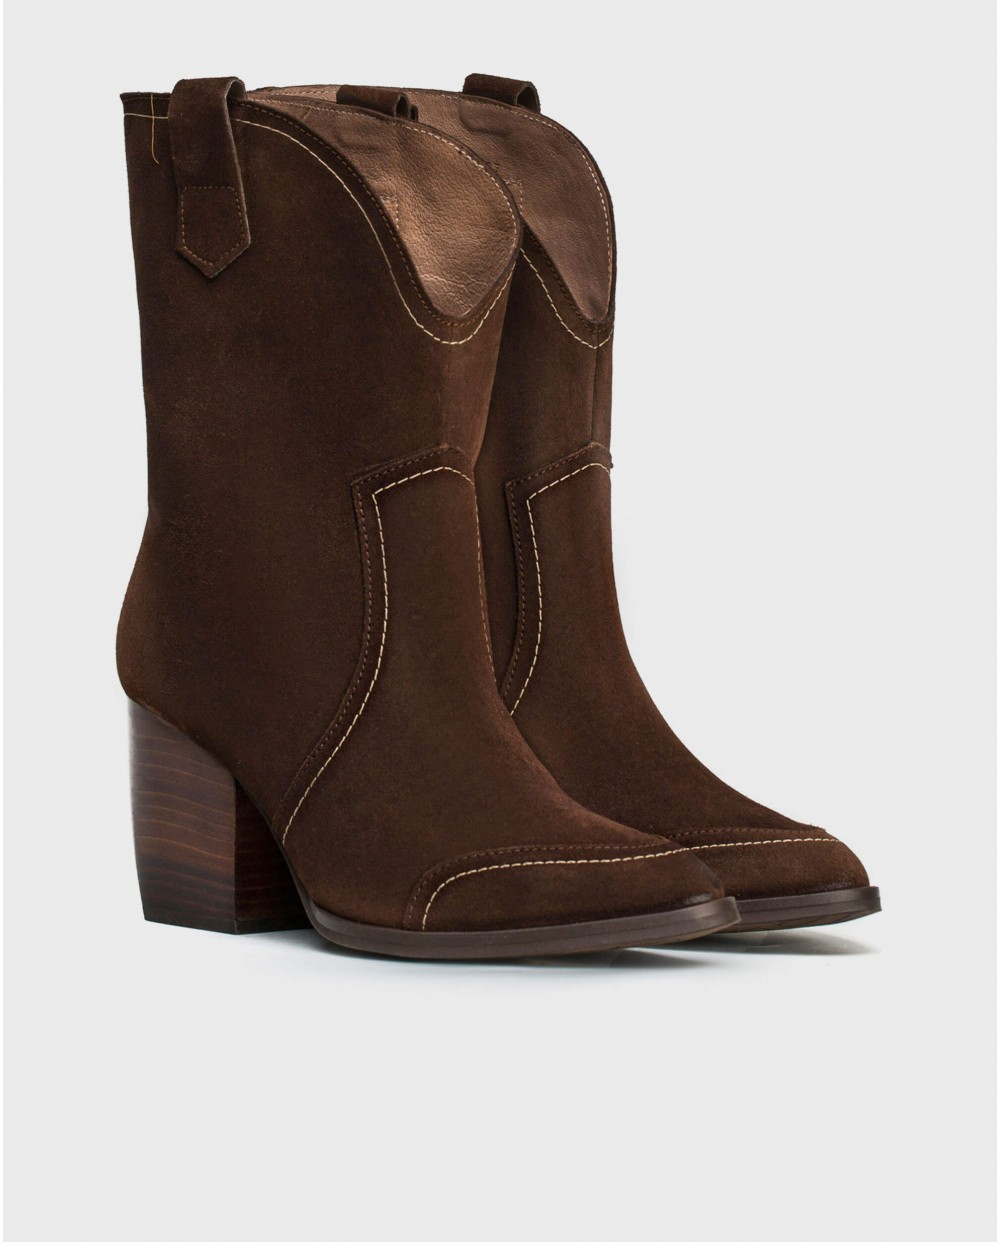 Wonders-Outlet-Leather waterproof 3/4 boot.